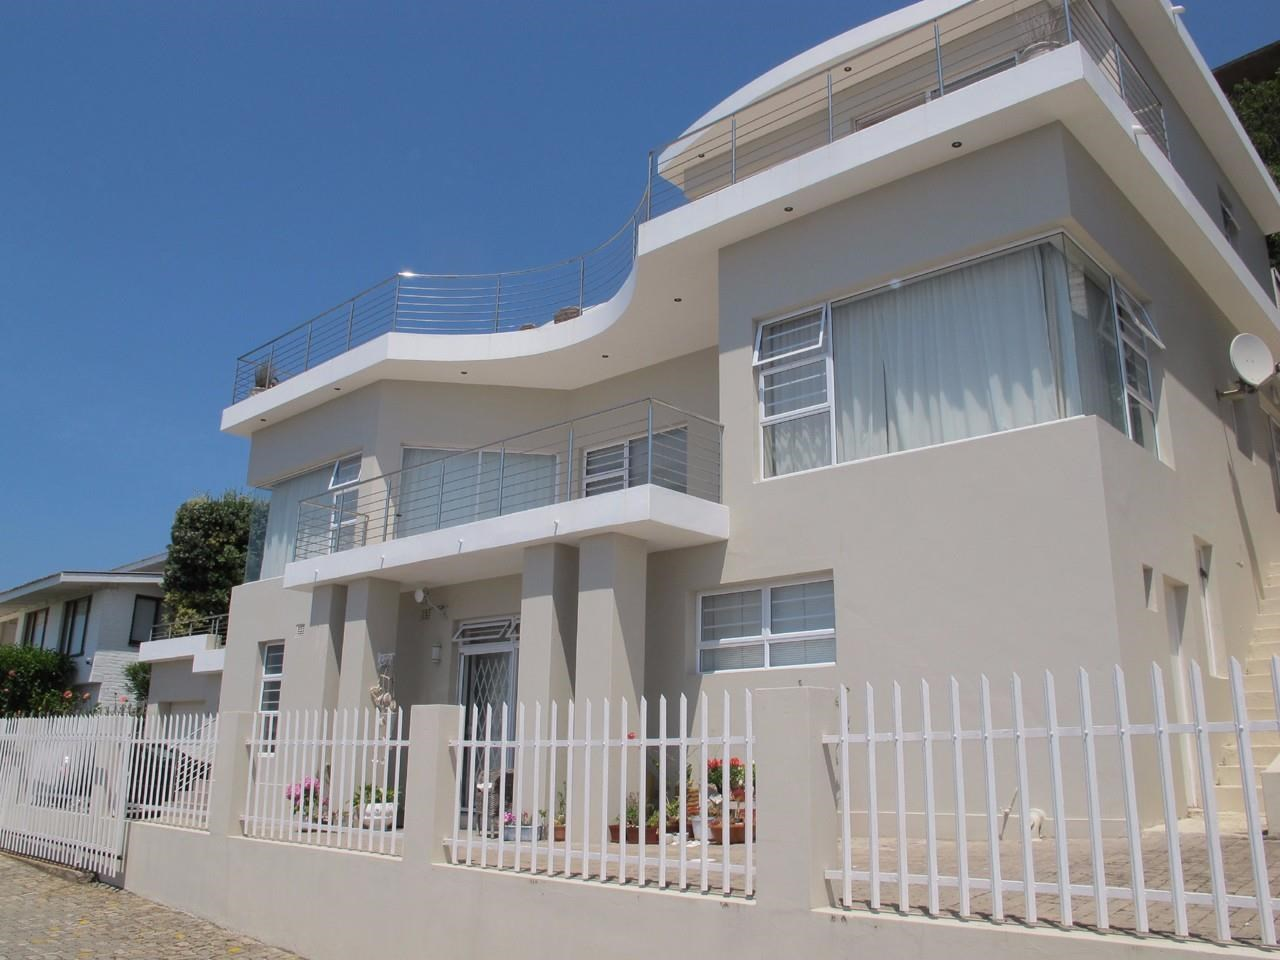 7 Bedroom House for Sale in Signal Hill